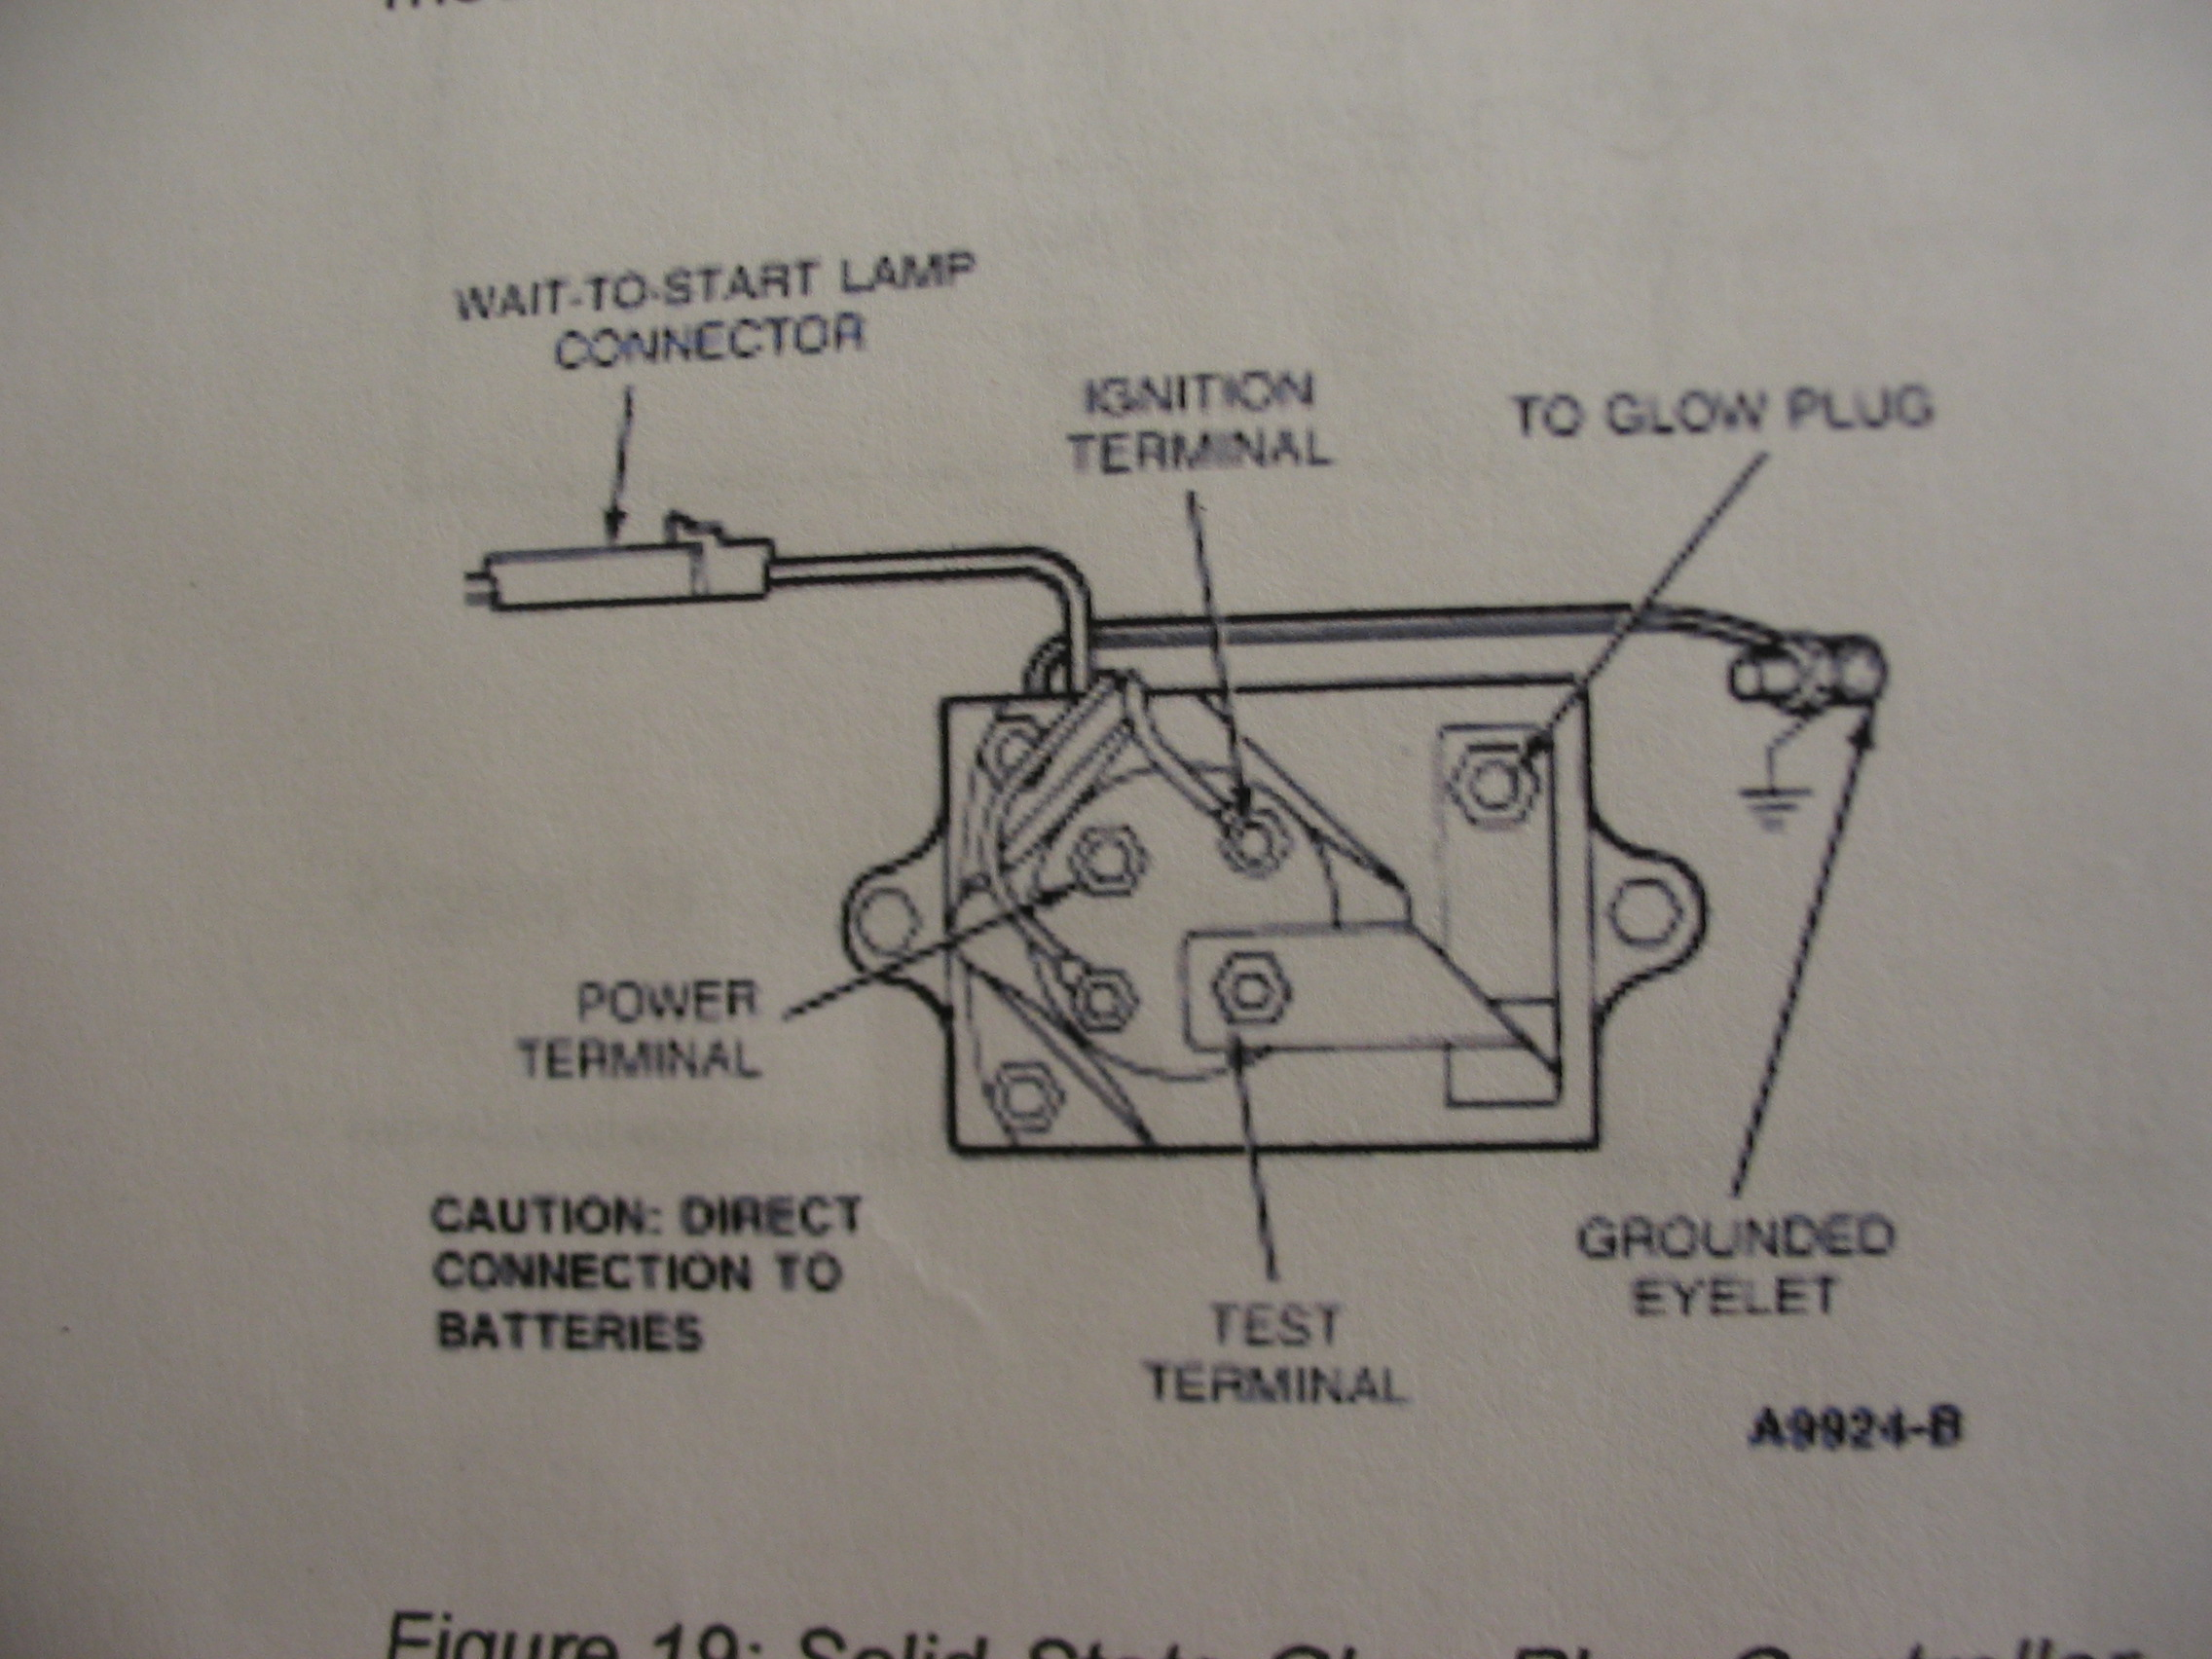 7 3 idi glow plug relay wiring diagram wiring diagrams scematicford 7 3 sel glow plug wiring harness wiring diagrams diagram of 1999 ford f350 glow plug relay on 7 3 idi glow plug relay wiring diagram